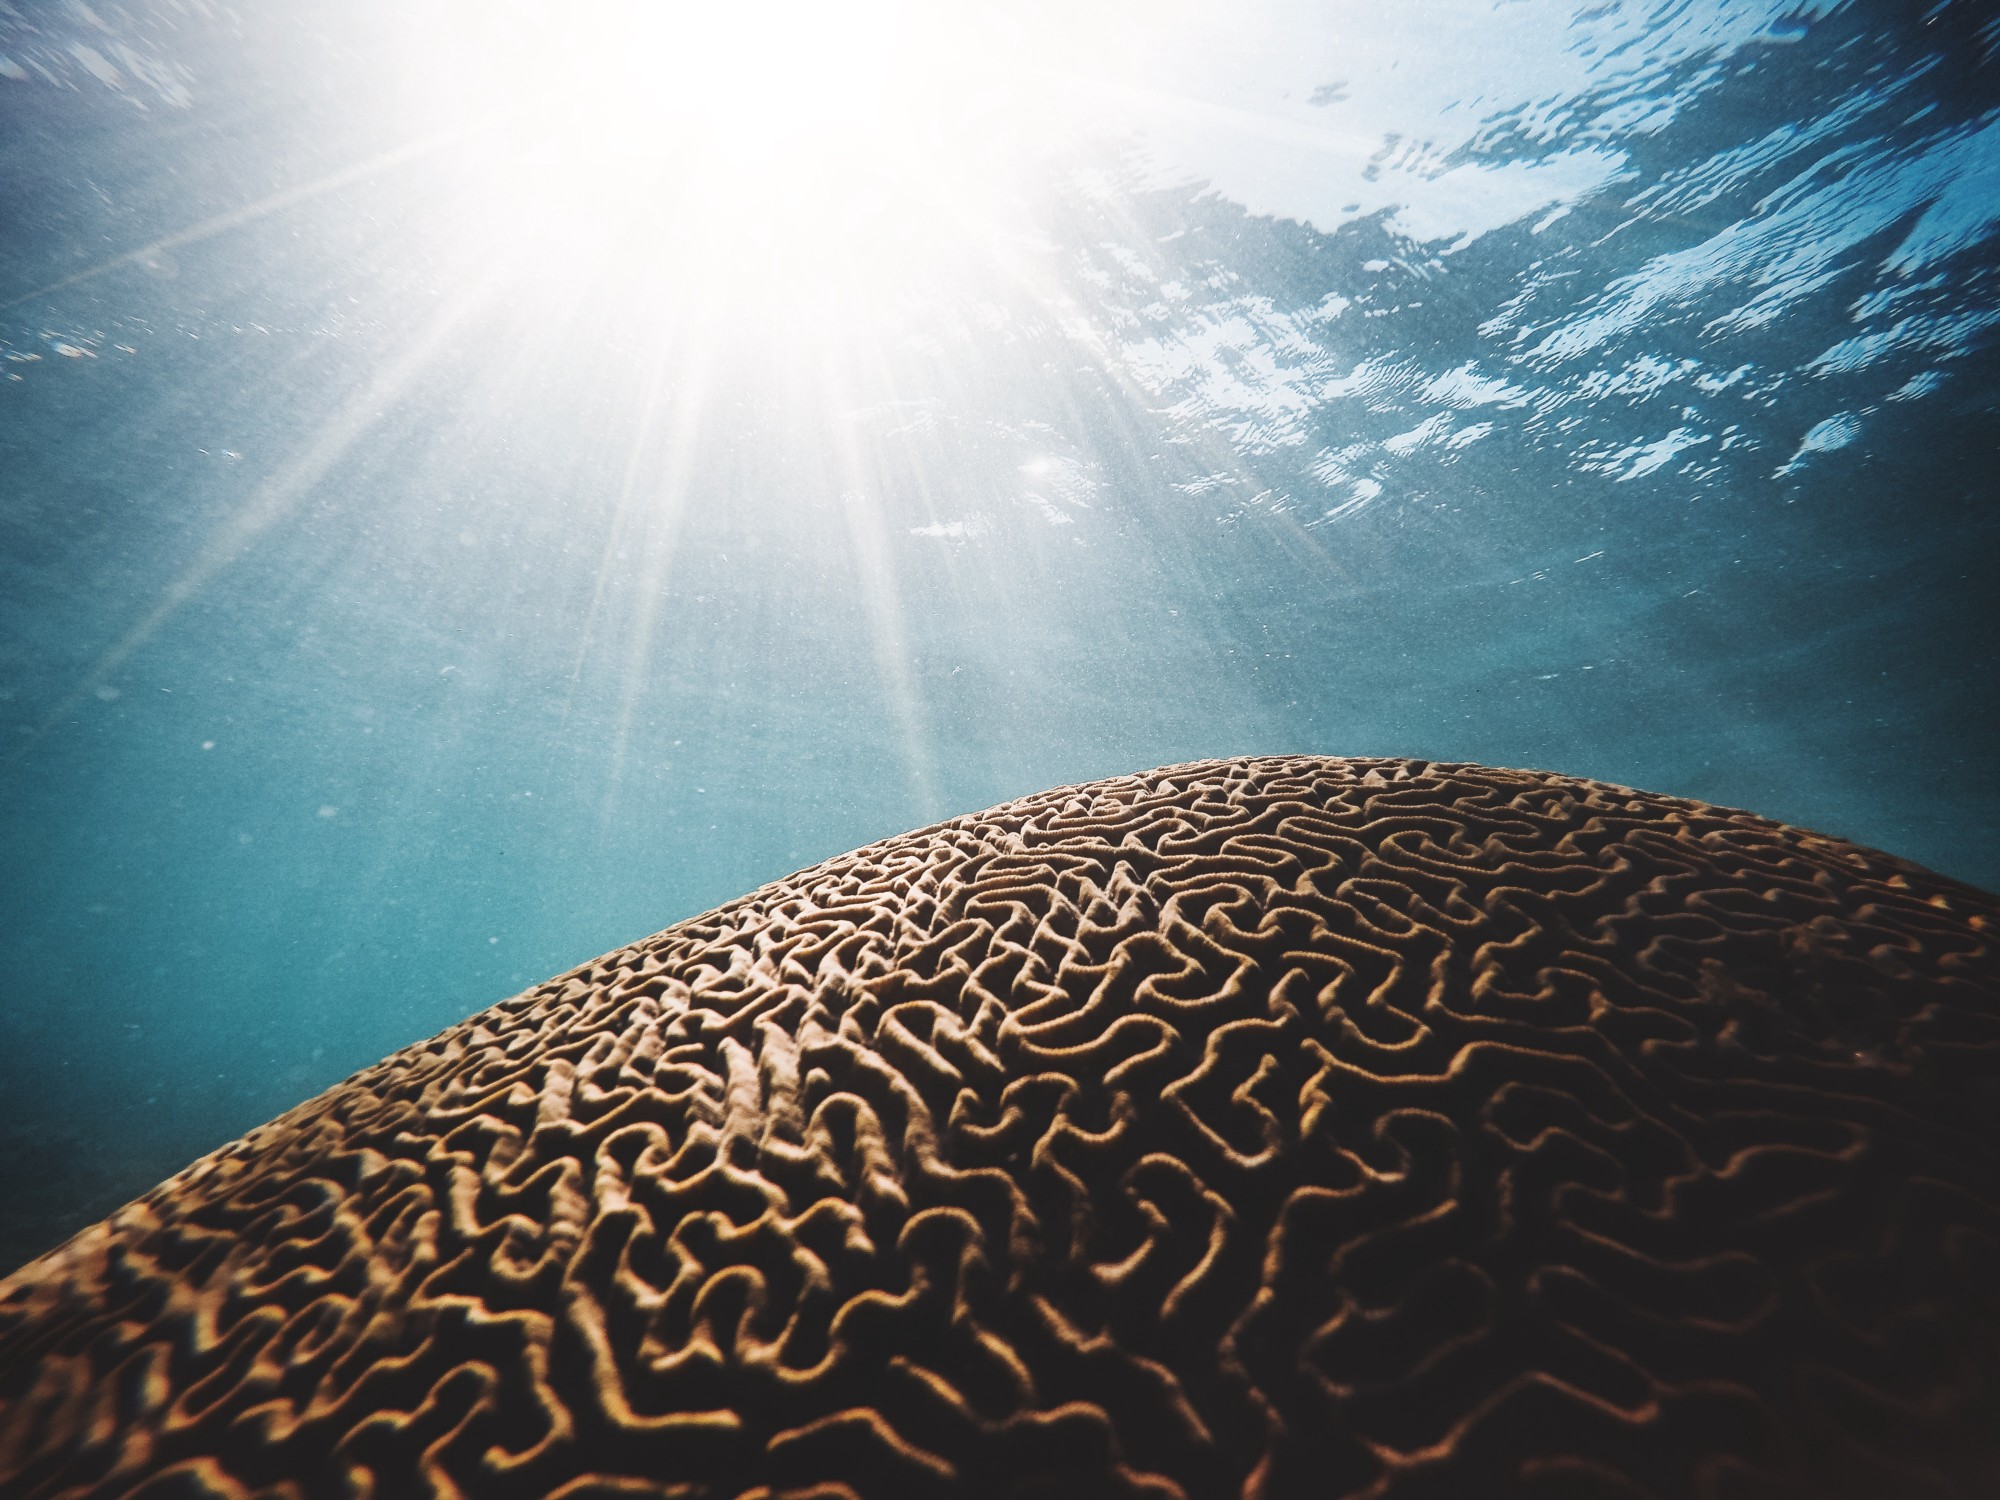 Underwater view of a coral with twisting lines like a brain